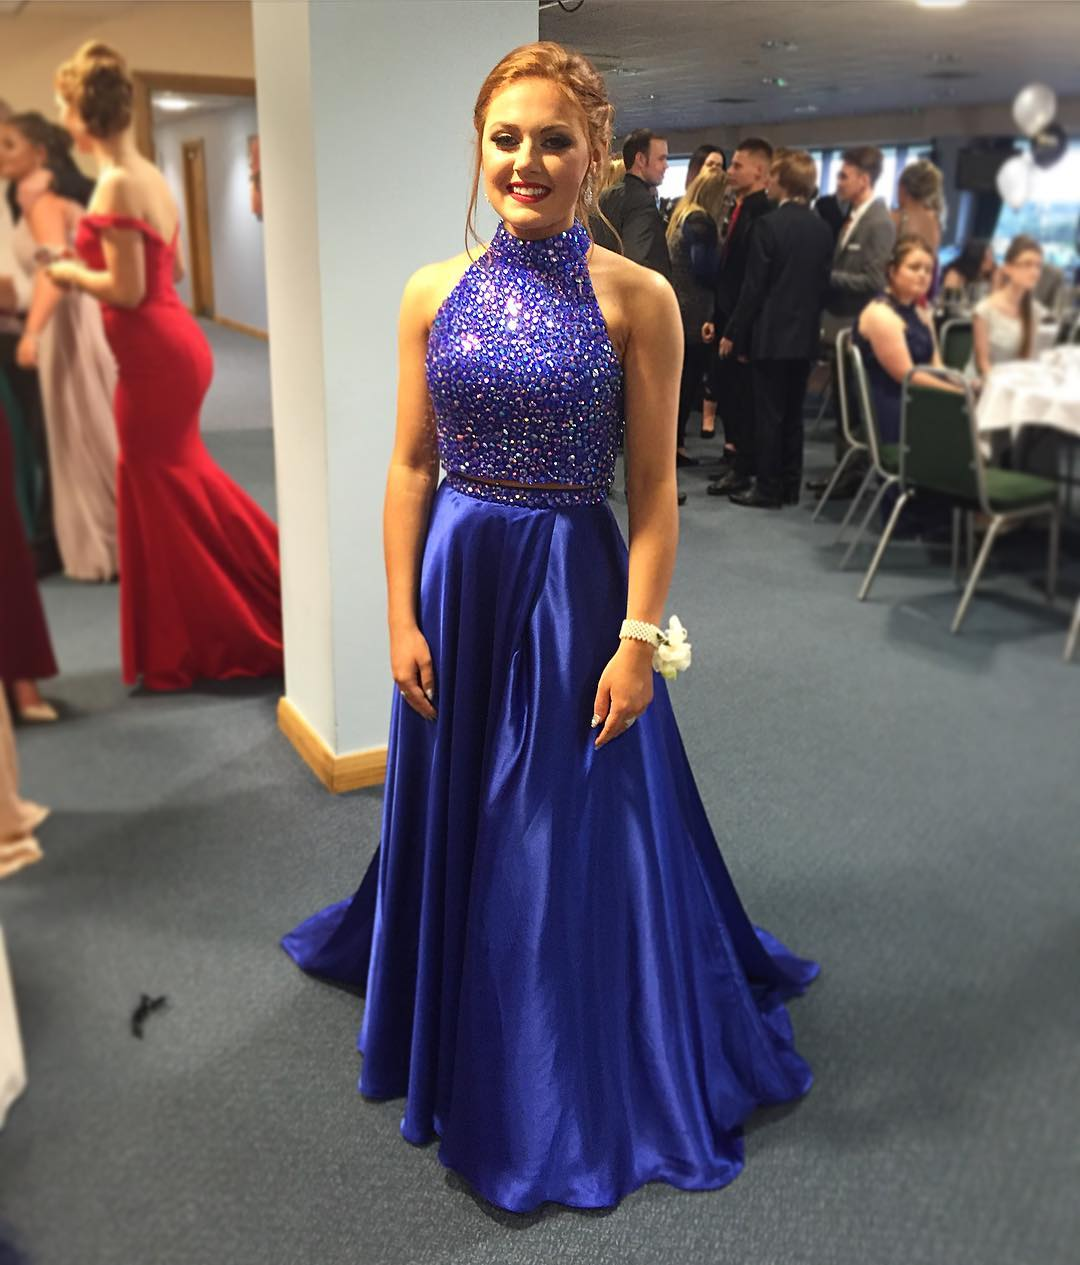 9ed8966c80f Navy Blue 2 Piece Halter Neck Sequin Beaded A-Line Prom Dress ...